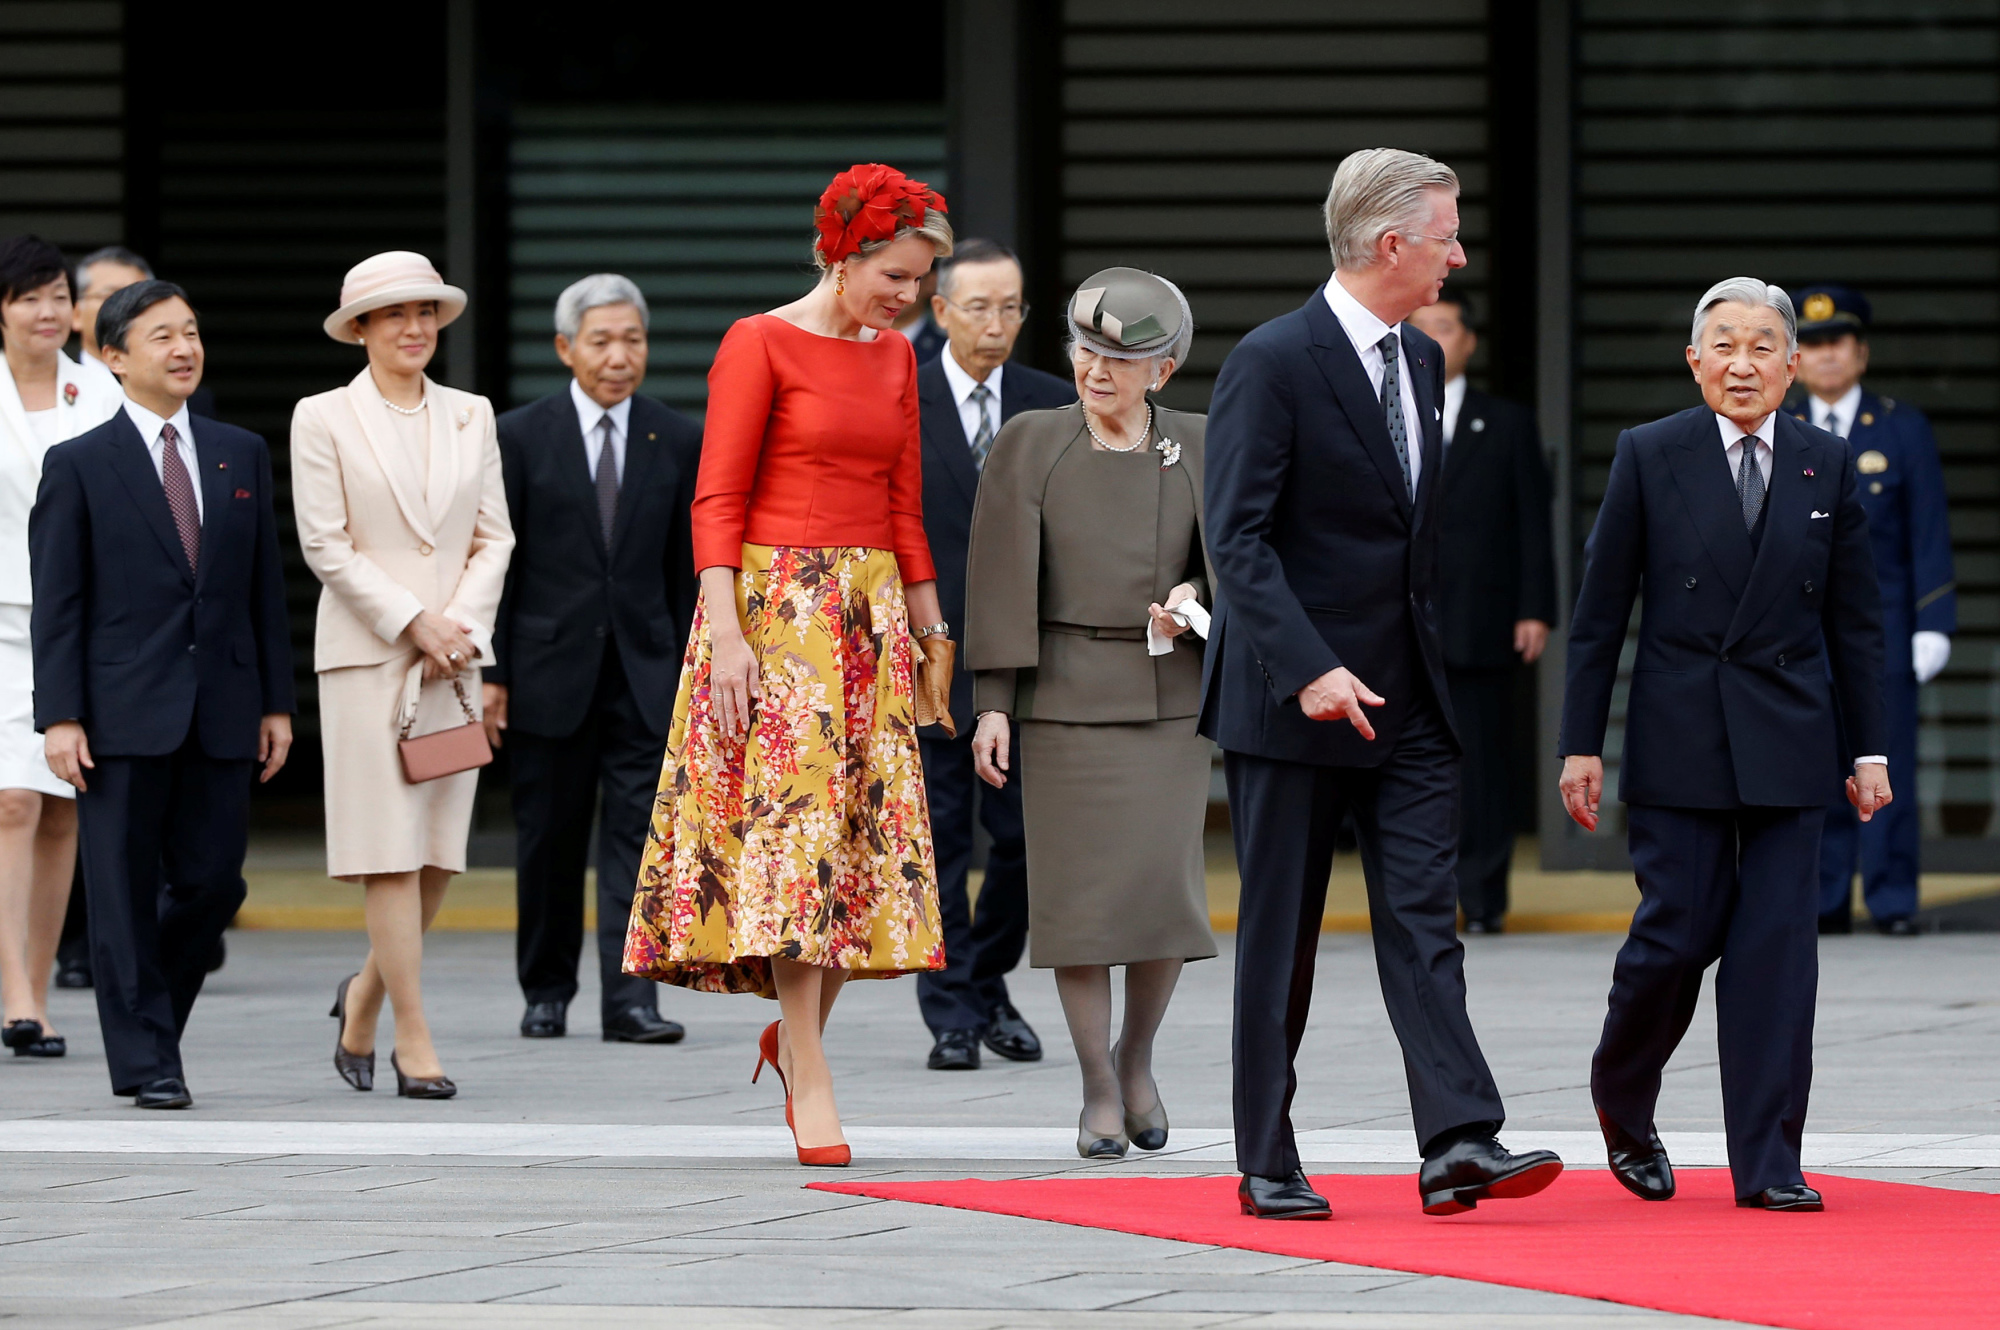 Belgium's King Philippe and Queen Mathilde are escorted by Emperor Akihito and Empress Michiko as Crown Prince Naruhito and Crown Princess Masako look on during a welcoming ceremony at the Imperial Palace in Tokyo on Tuesday. | REUTERS